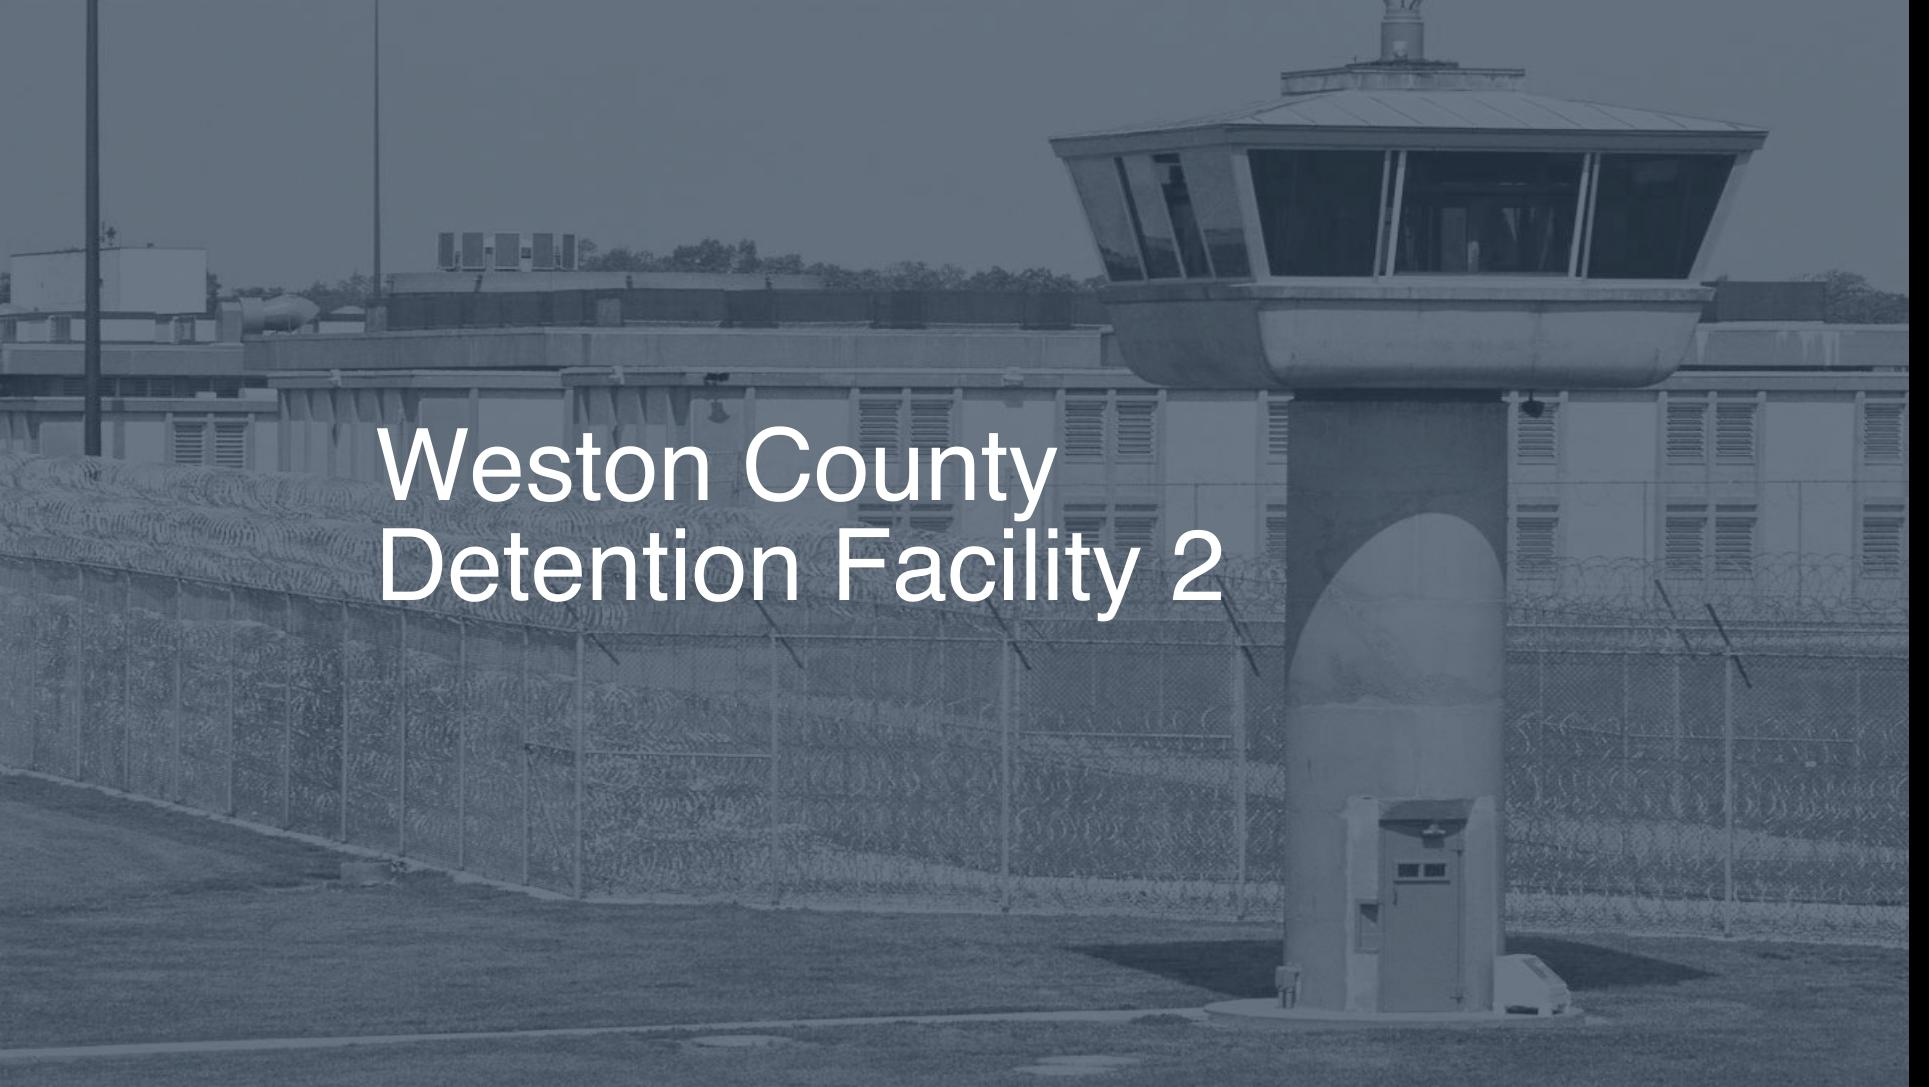 Weston County Detention Facility correctional facility picture